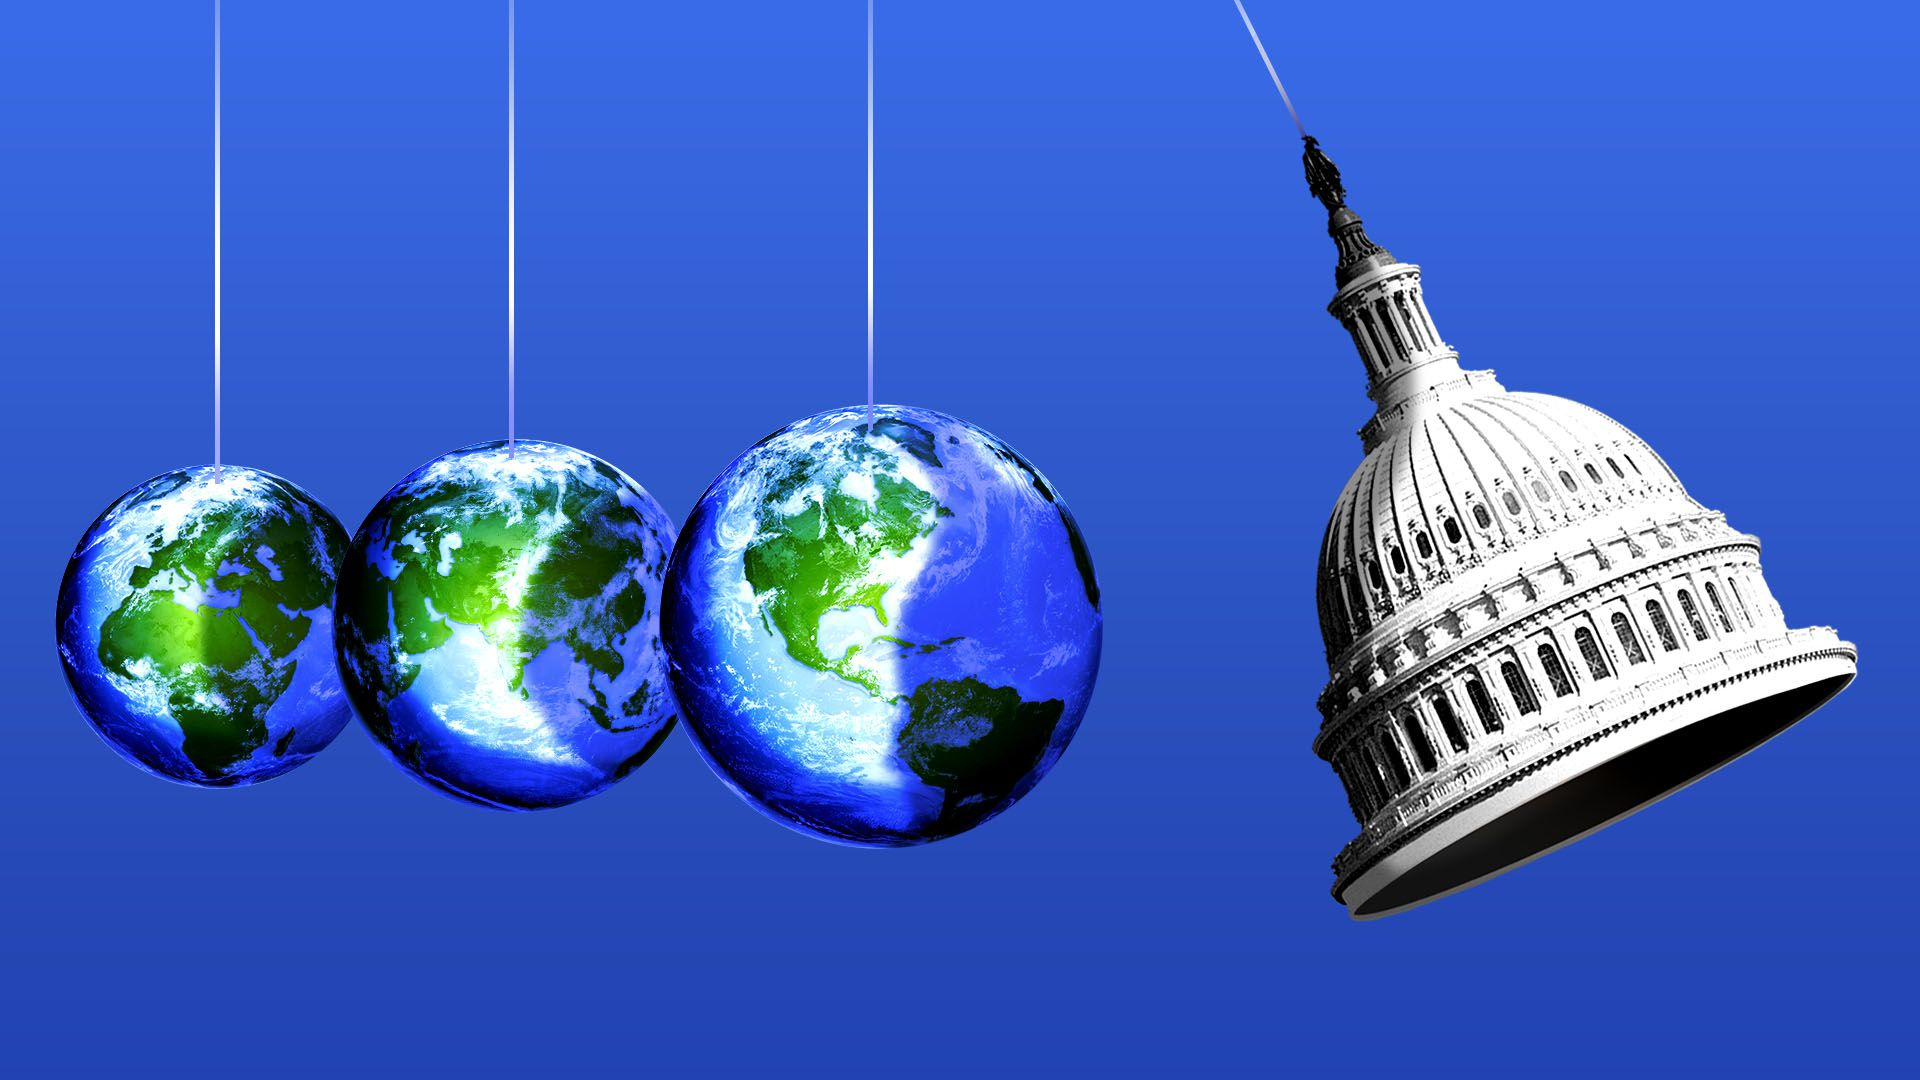 Illustration of a Newton's Cradle featuring multiple earths and the Capitol dome.